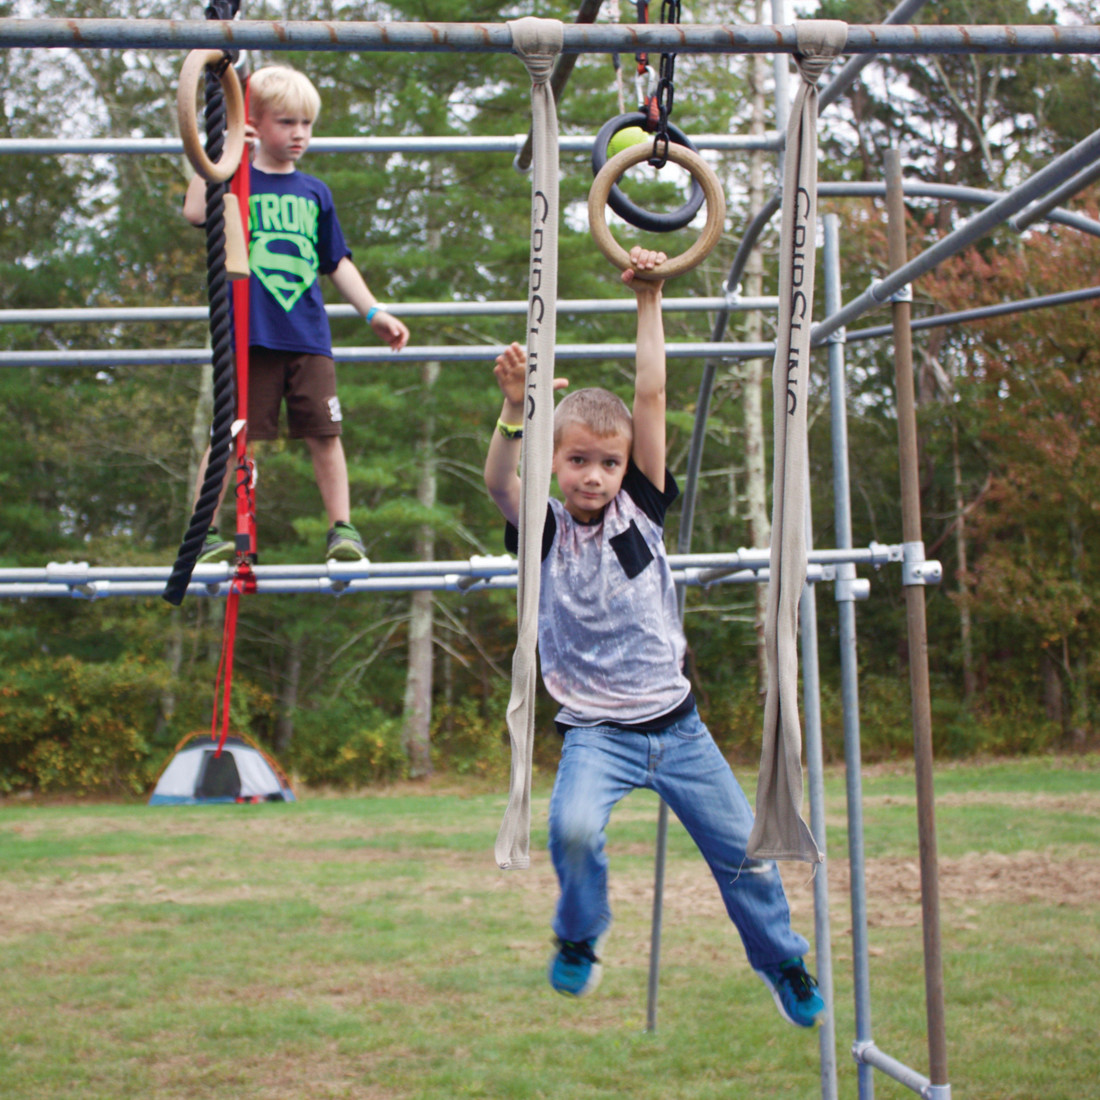 WATCHFUL EYE: Max Skinner, 7, watches as CJ Jardin, 7, of Warwick practices his ninja skills at ObstaCamp.